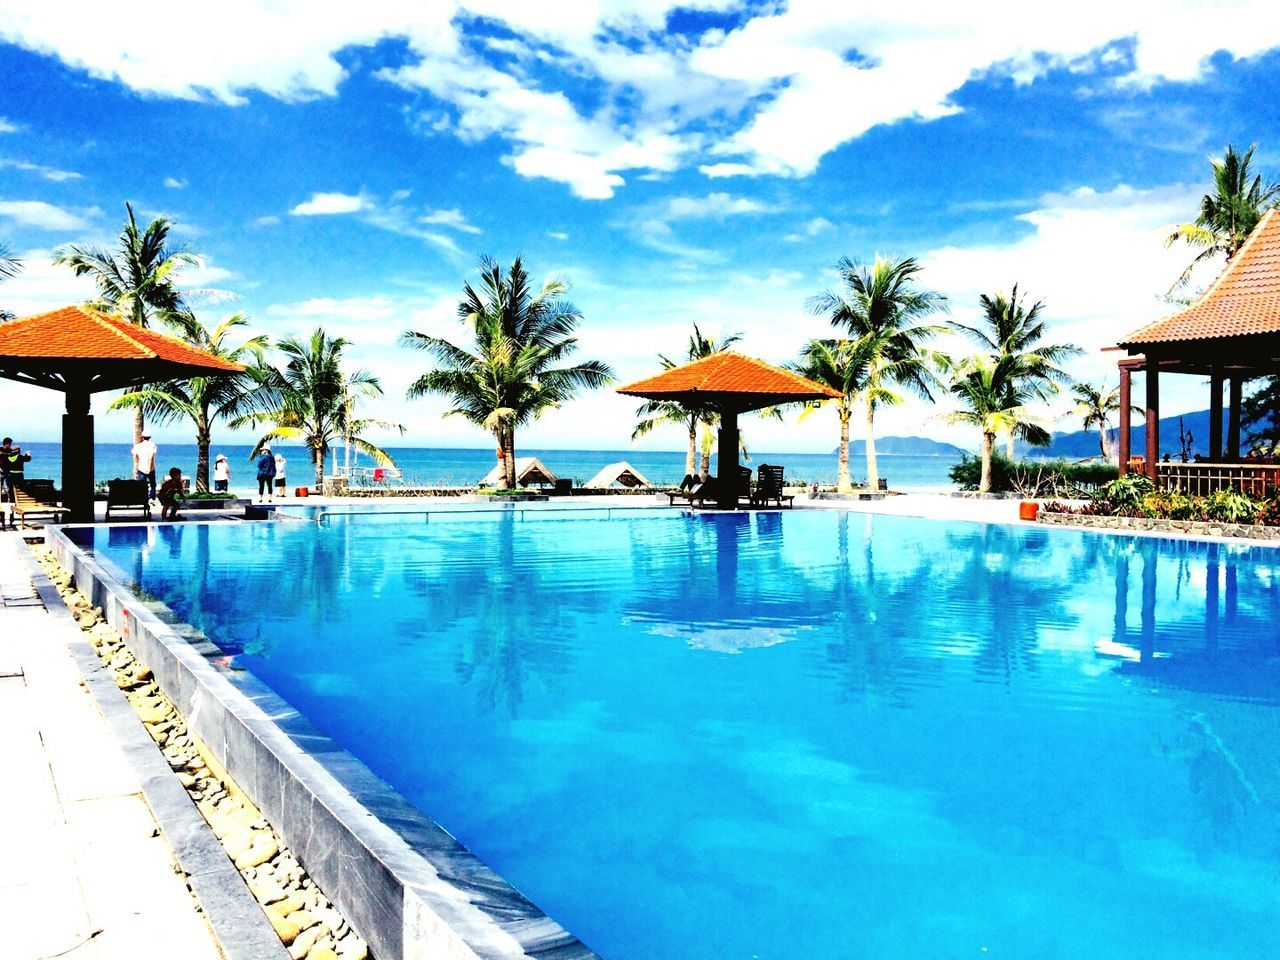 swimming pool, water, vacations, luxury hotel, tourist resort, relaxation, hotel, palm tree, luxury, tranquility, day, architecture, outdoors, built structure, sea, sky, beauty in nature, nature, no people, swimming, tree